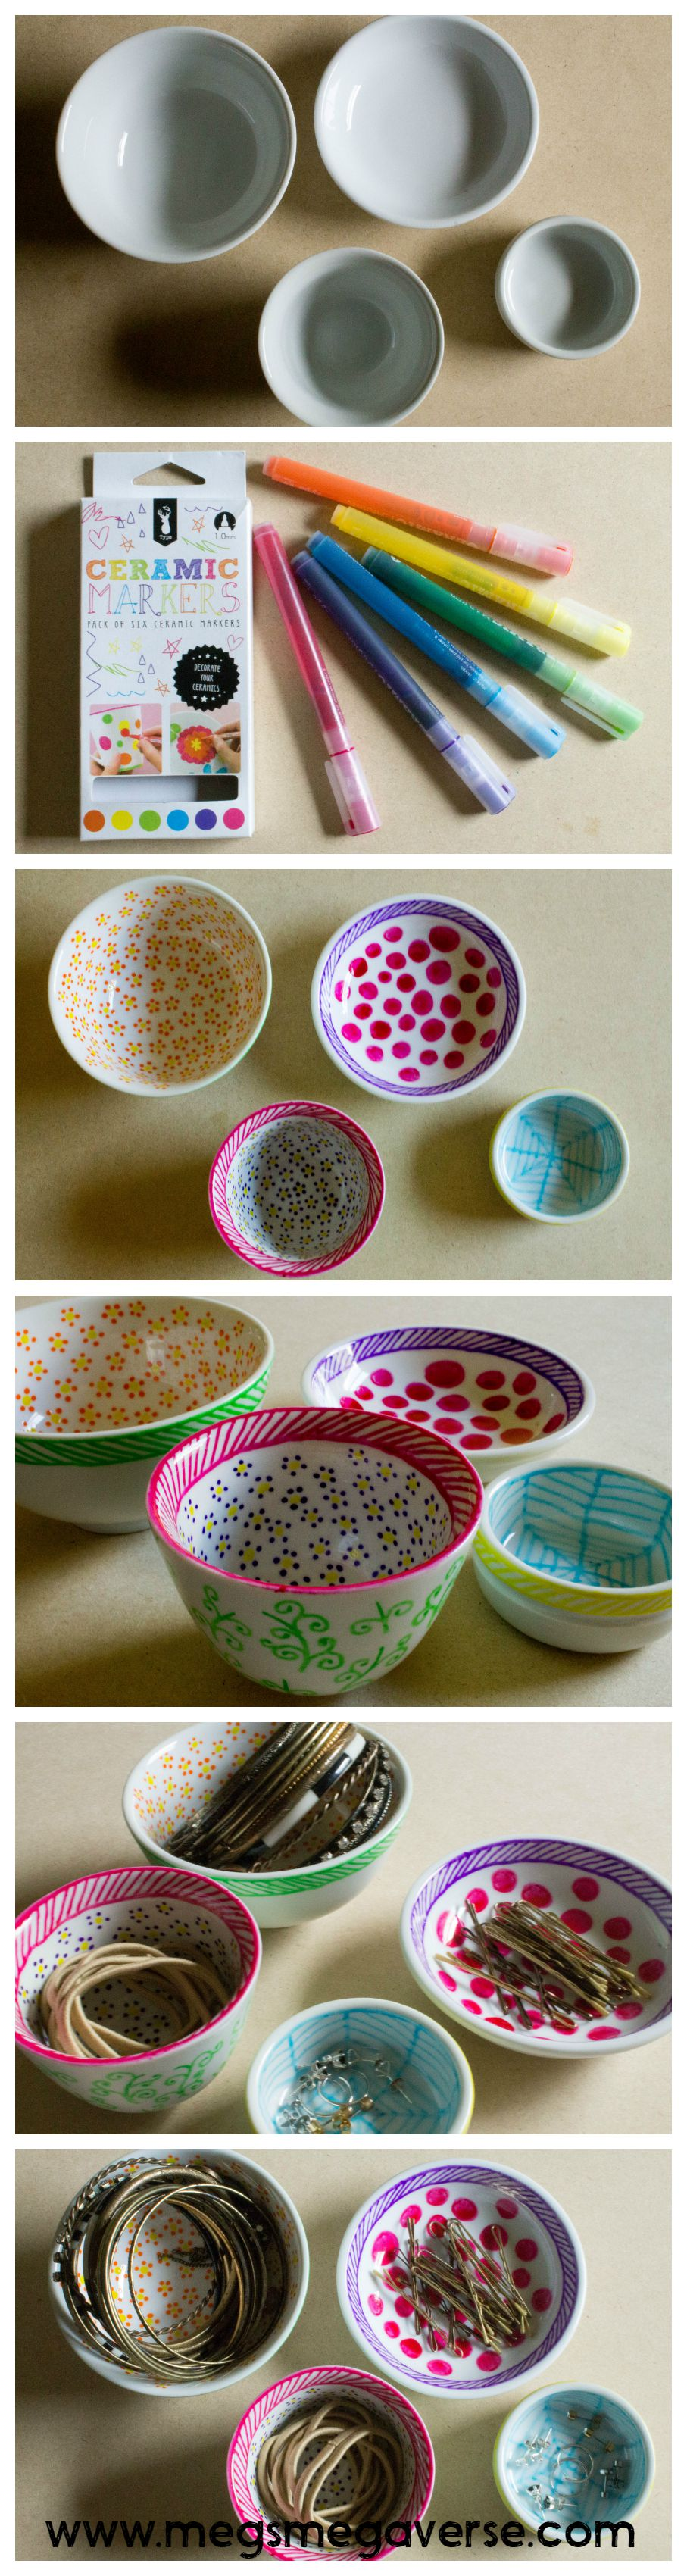 DIY jewellery organisation. Plain white ceramic dishes and ceramic pens. These look super awesome!